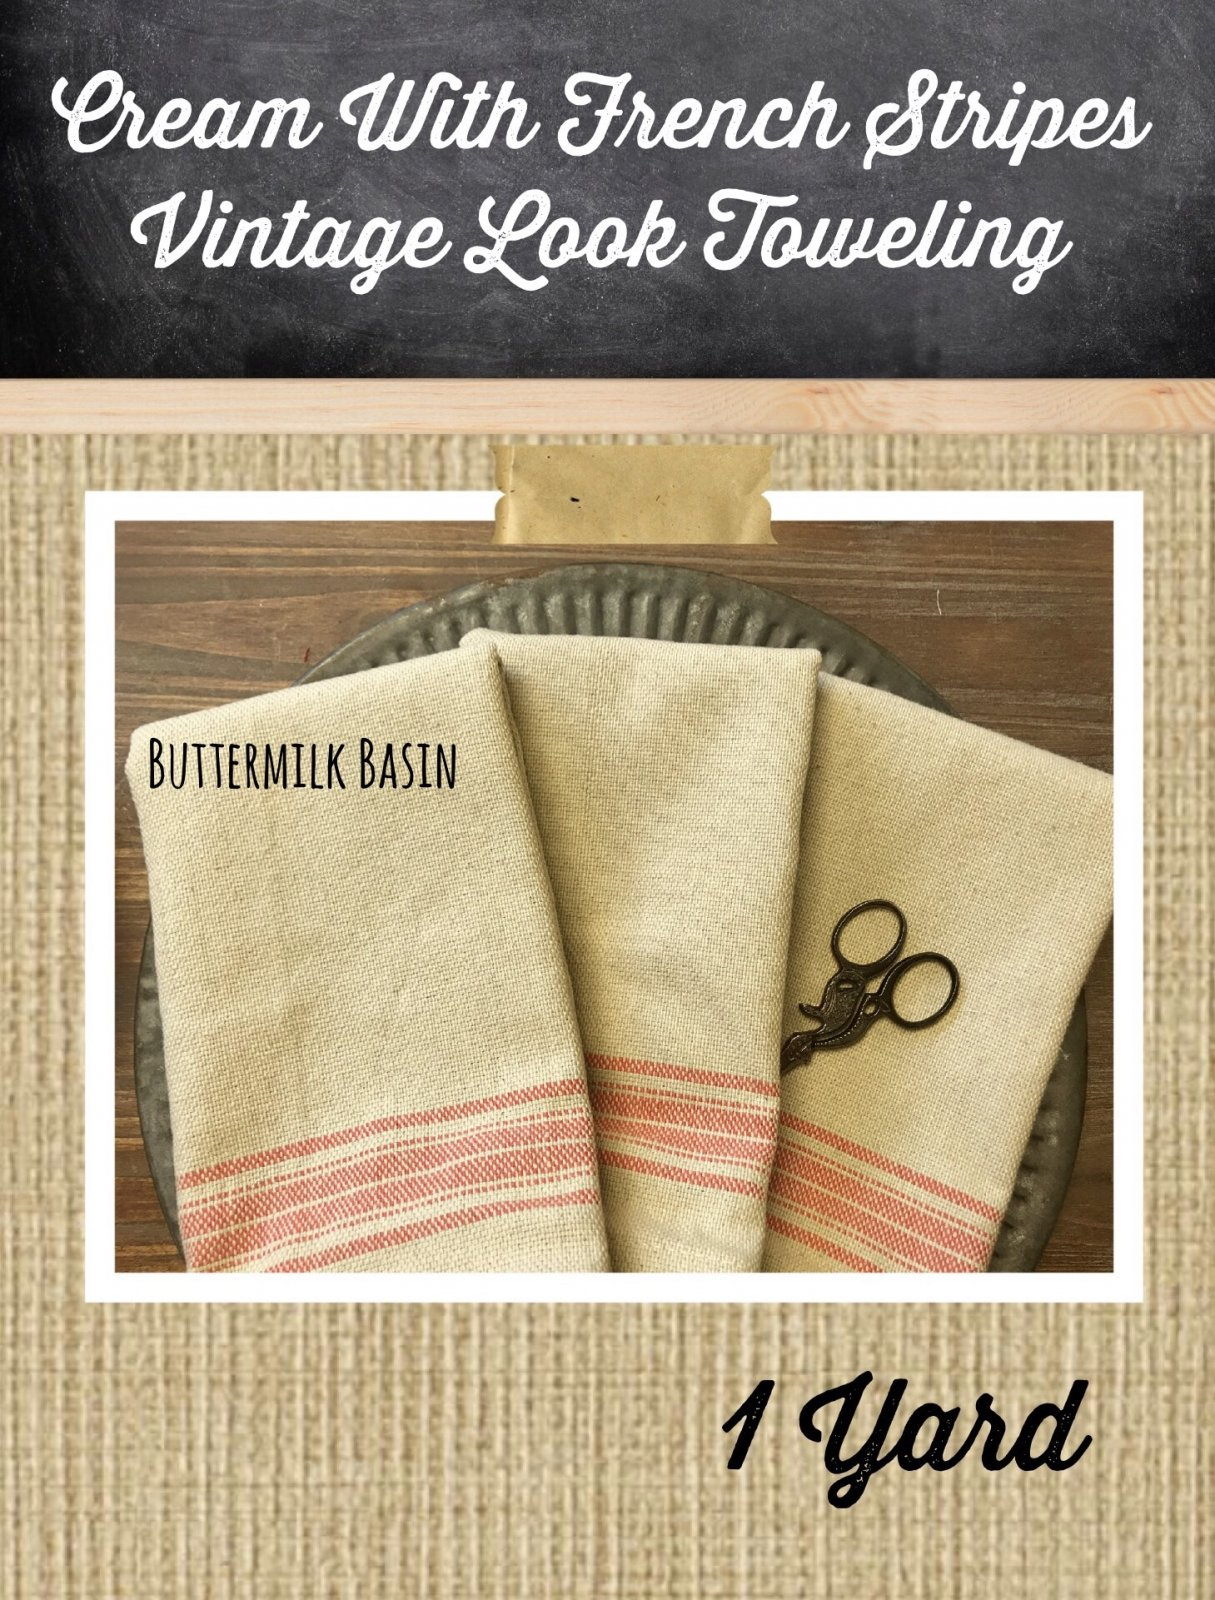 Cream with Red French Stripes Vintage Look Toweling